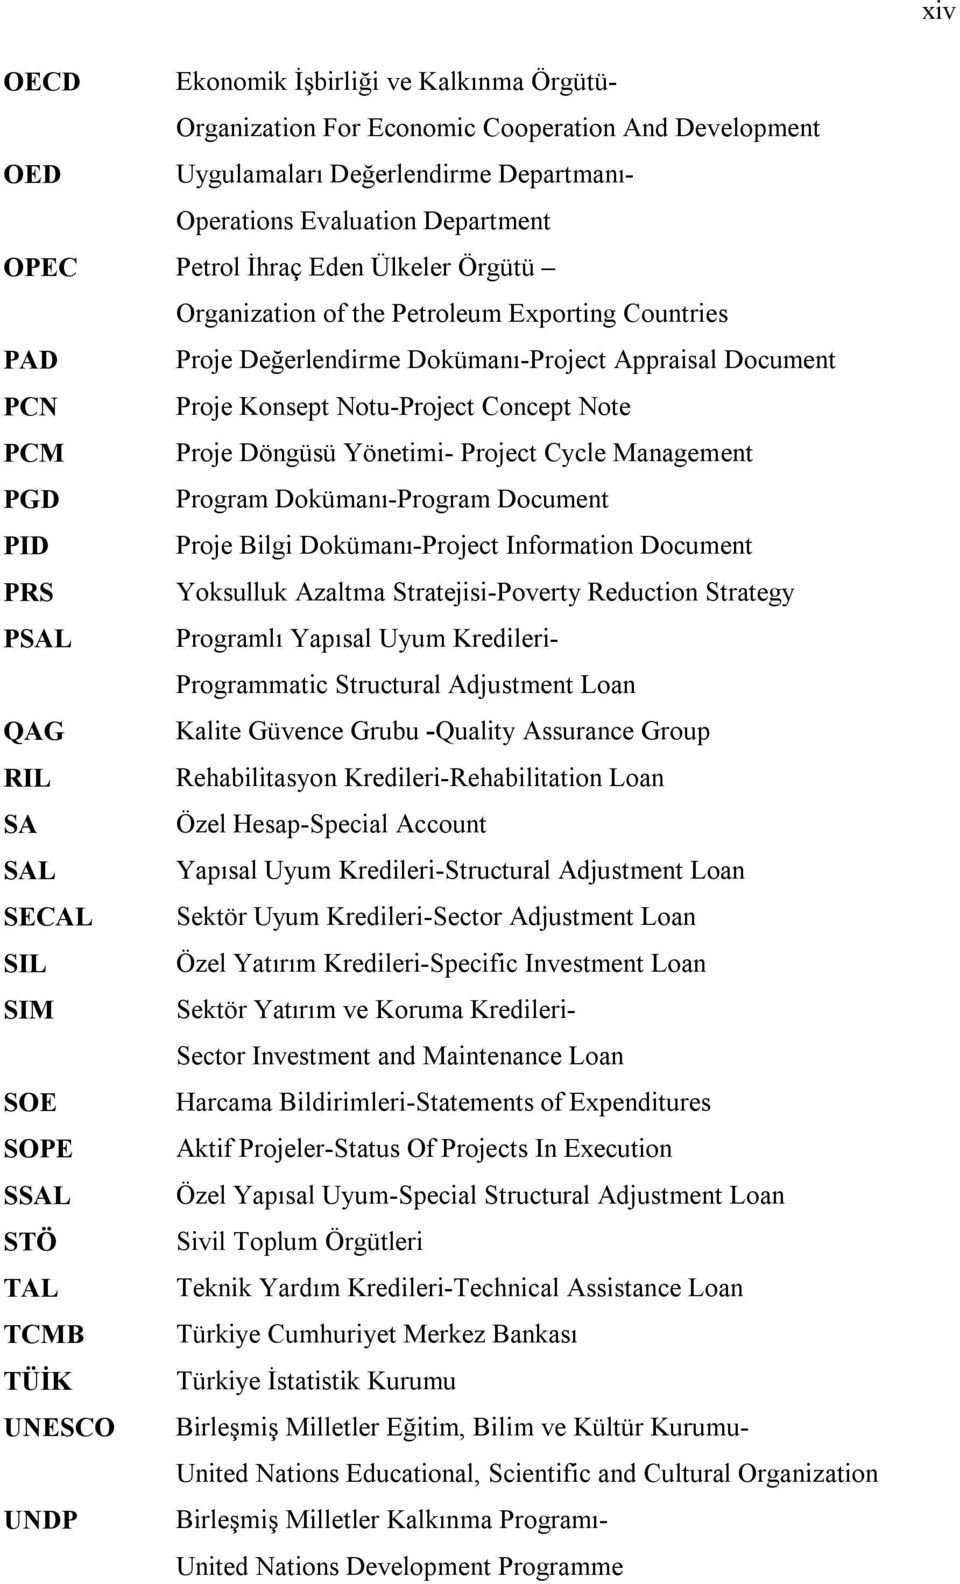 Yönetimi- Project Cycle Management PGD Program Dokümanı-Program Document PID Proje Bilgi Dokümanı-Project Information Document PRS Yoksulluk Azaltma Stratejisi-Poverty Reduction Strategy PSAL